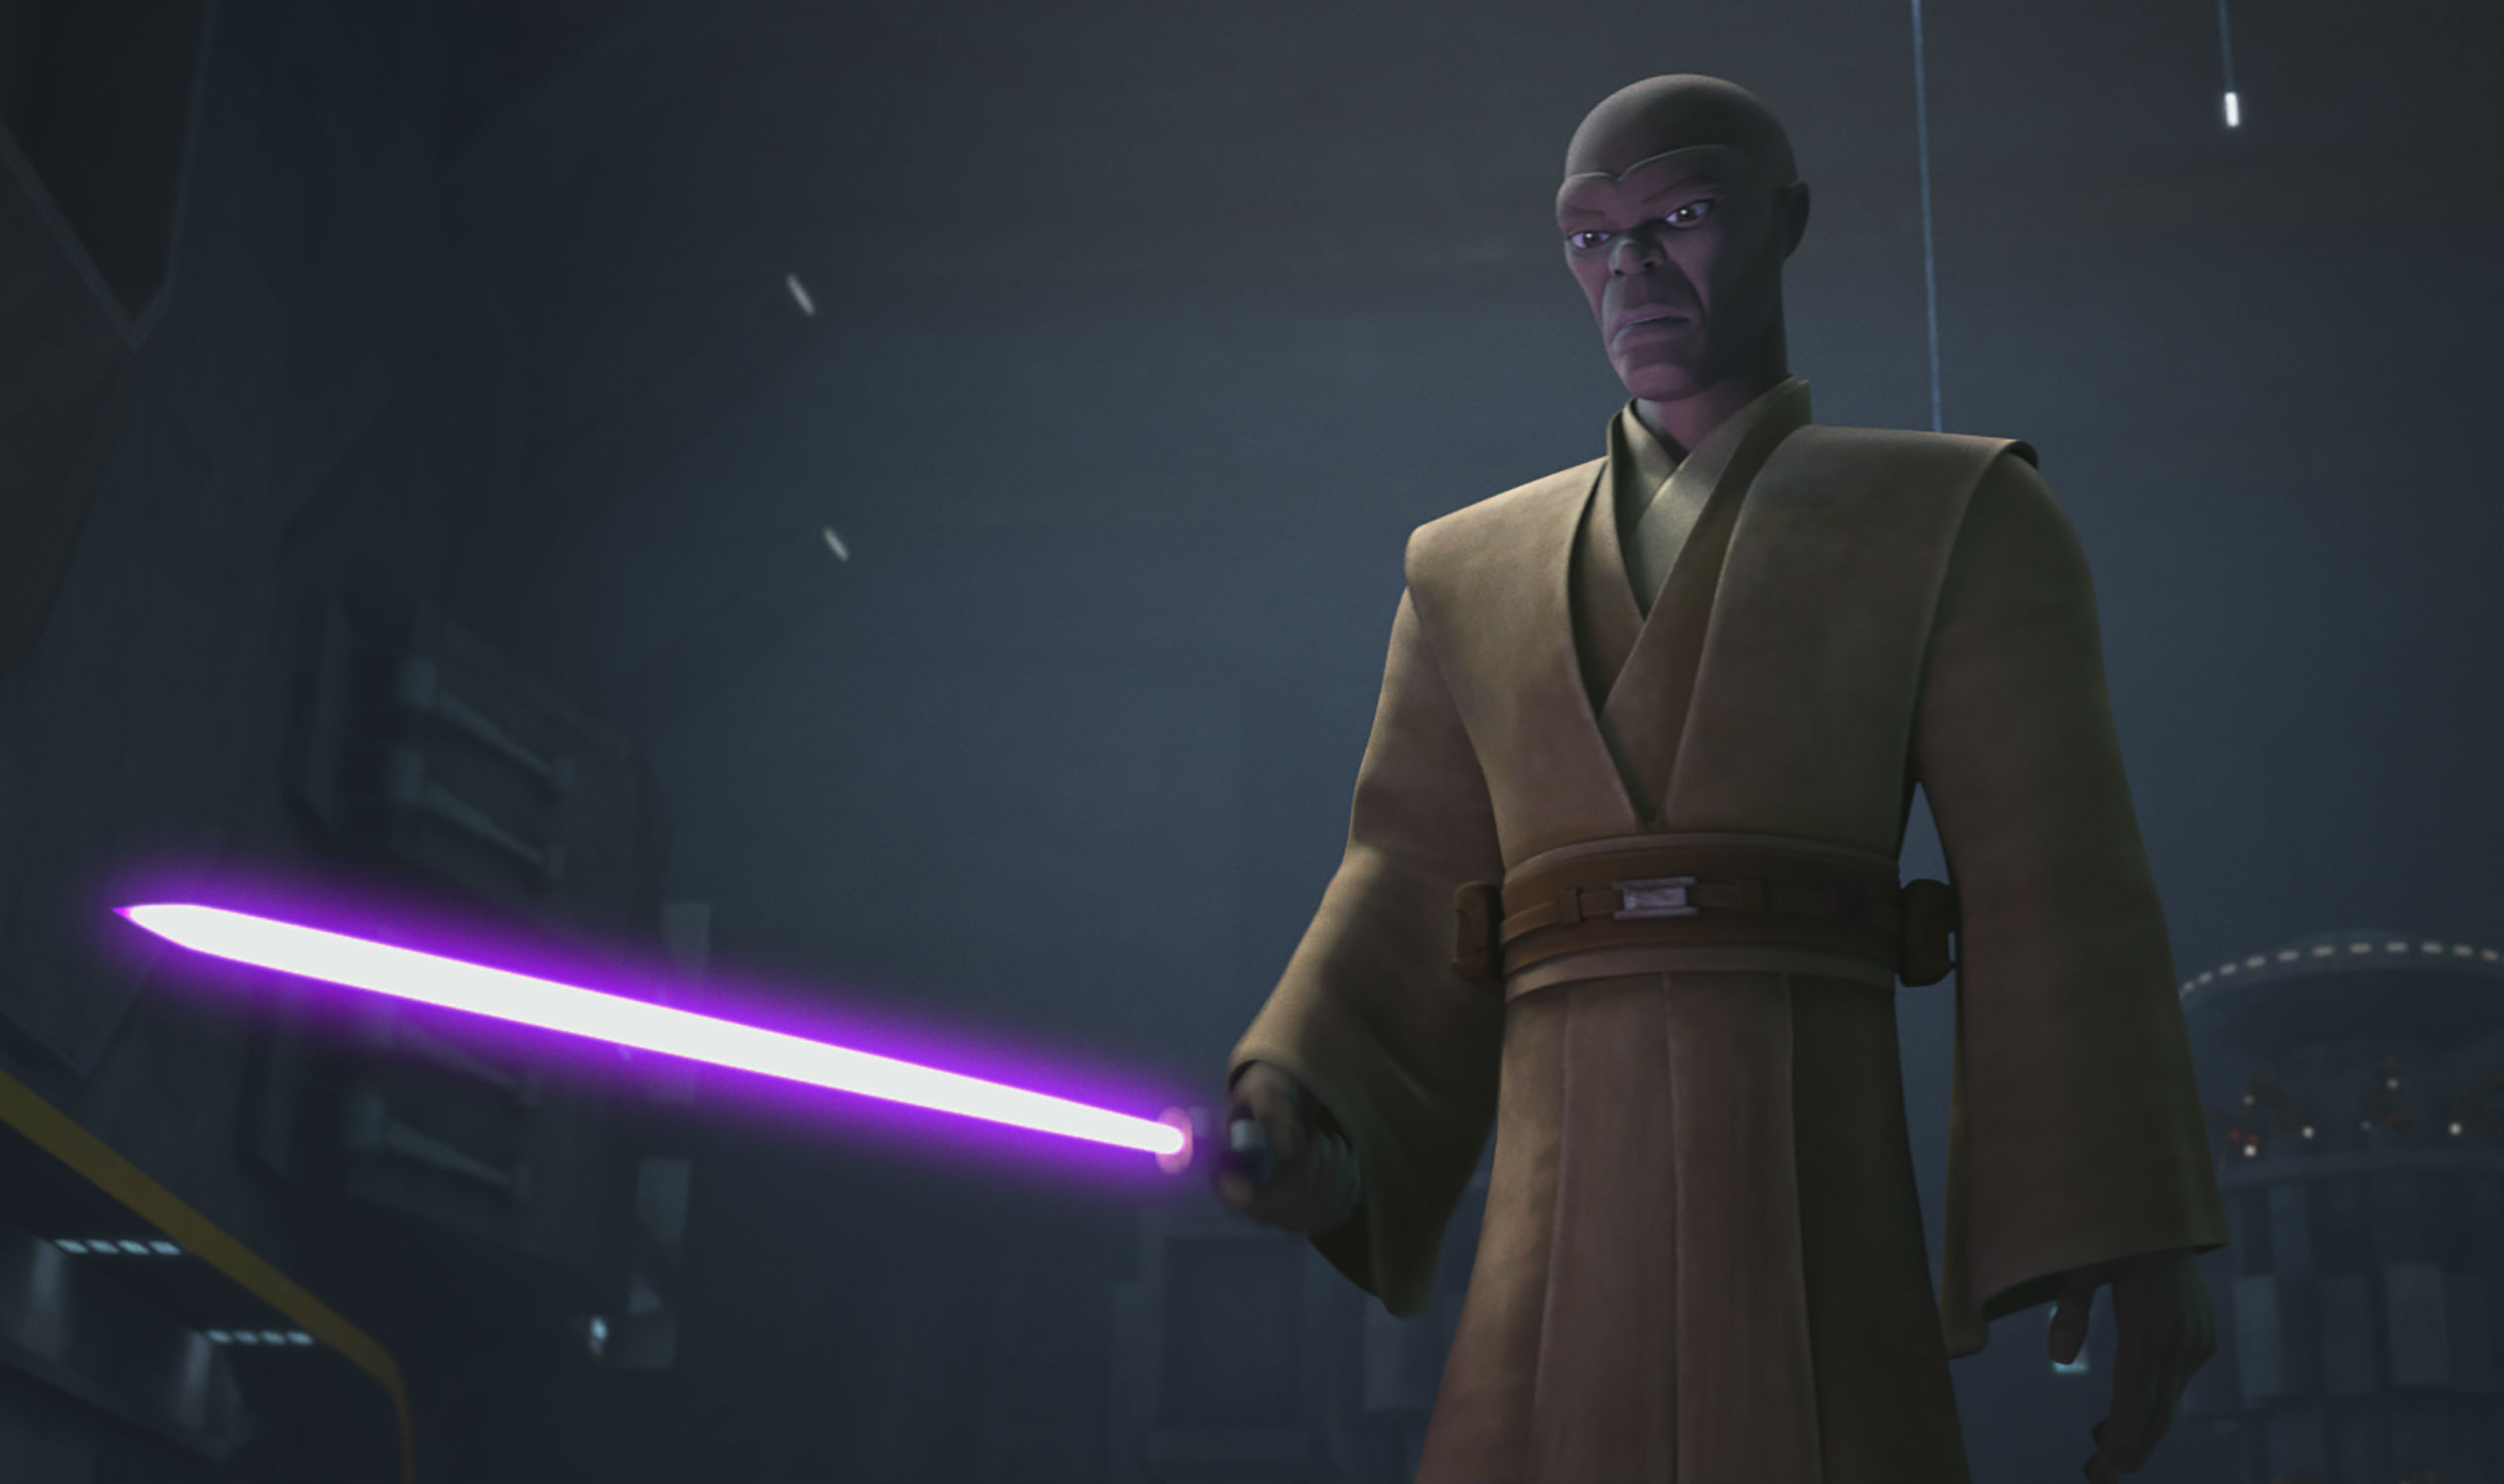 Clone Wars Season 8 release date, plot, trailer, and why it